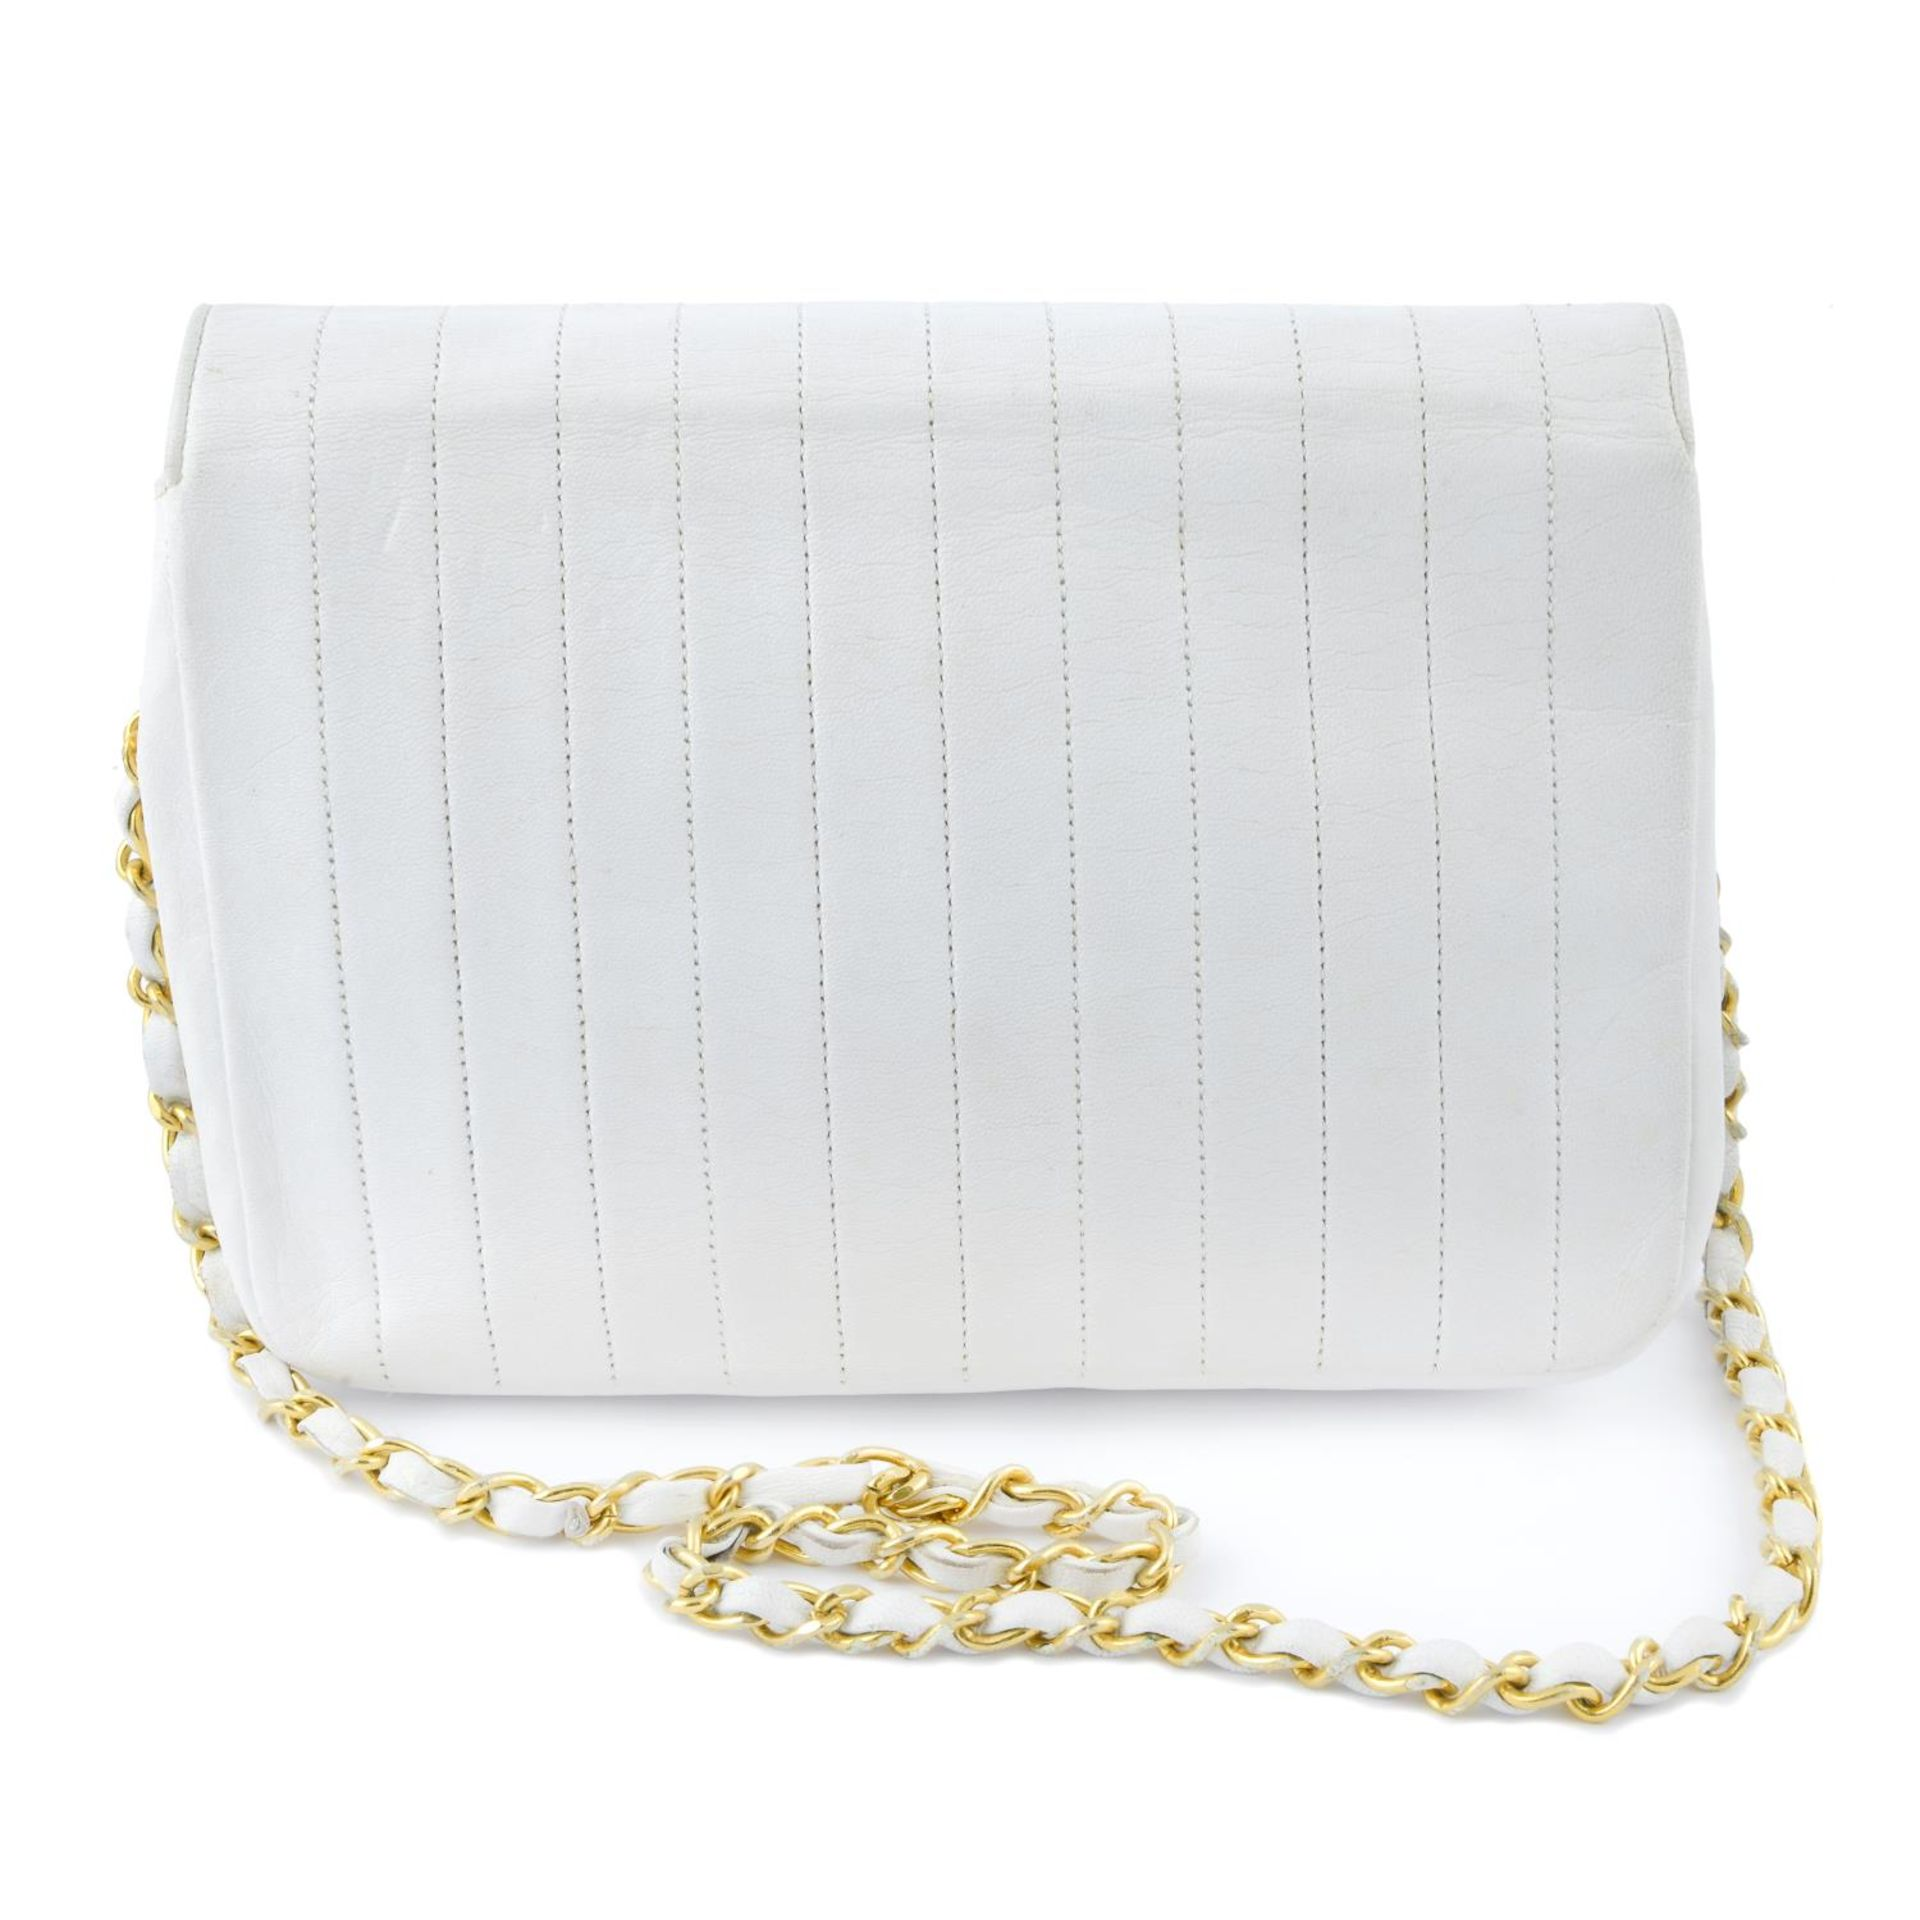 CHANEL - a vintage white single flap handbag. - Image 2 of 4